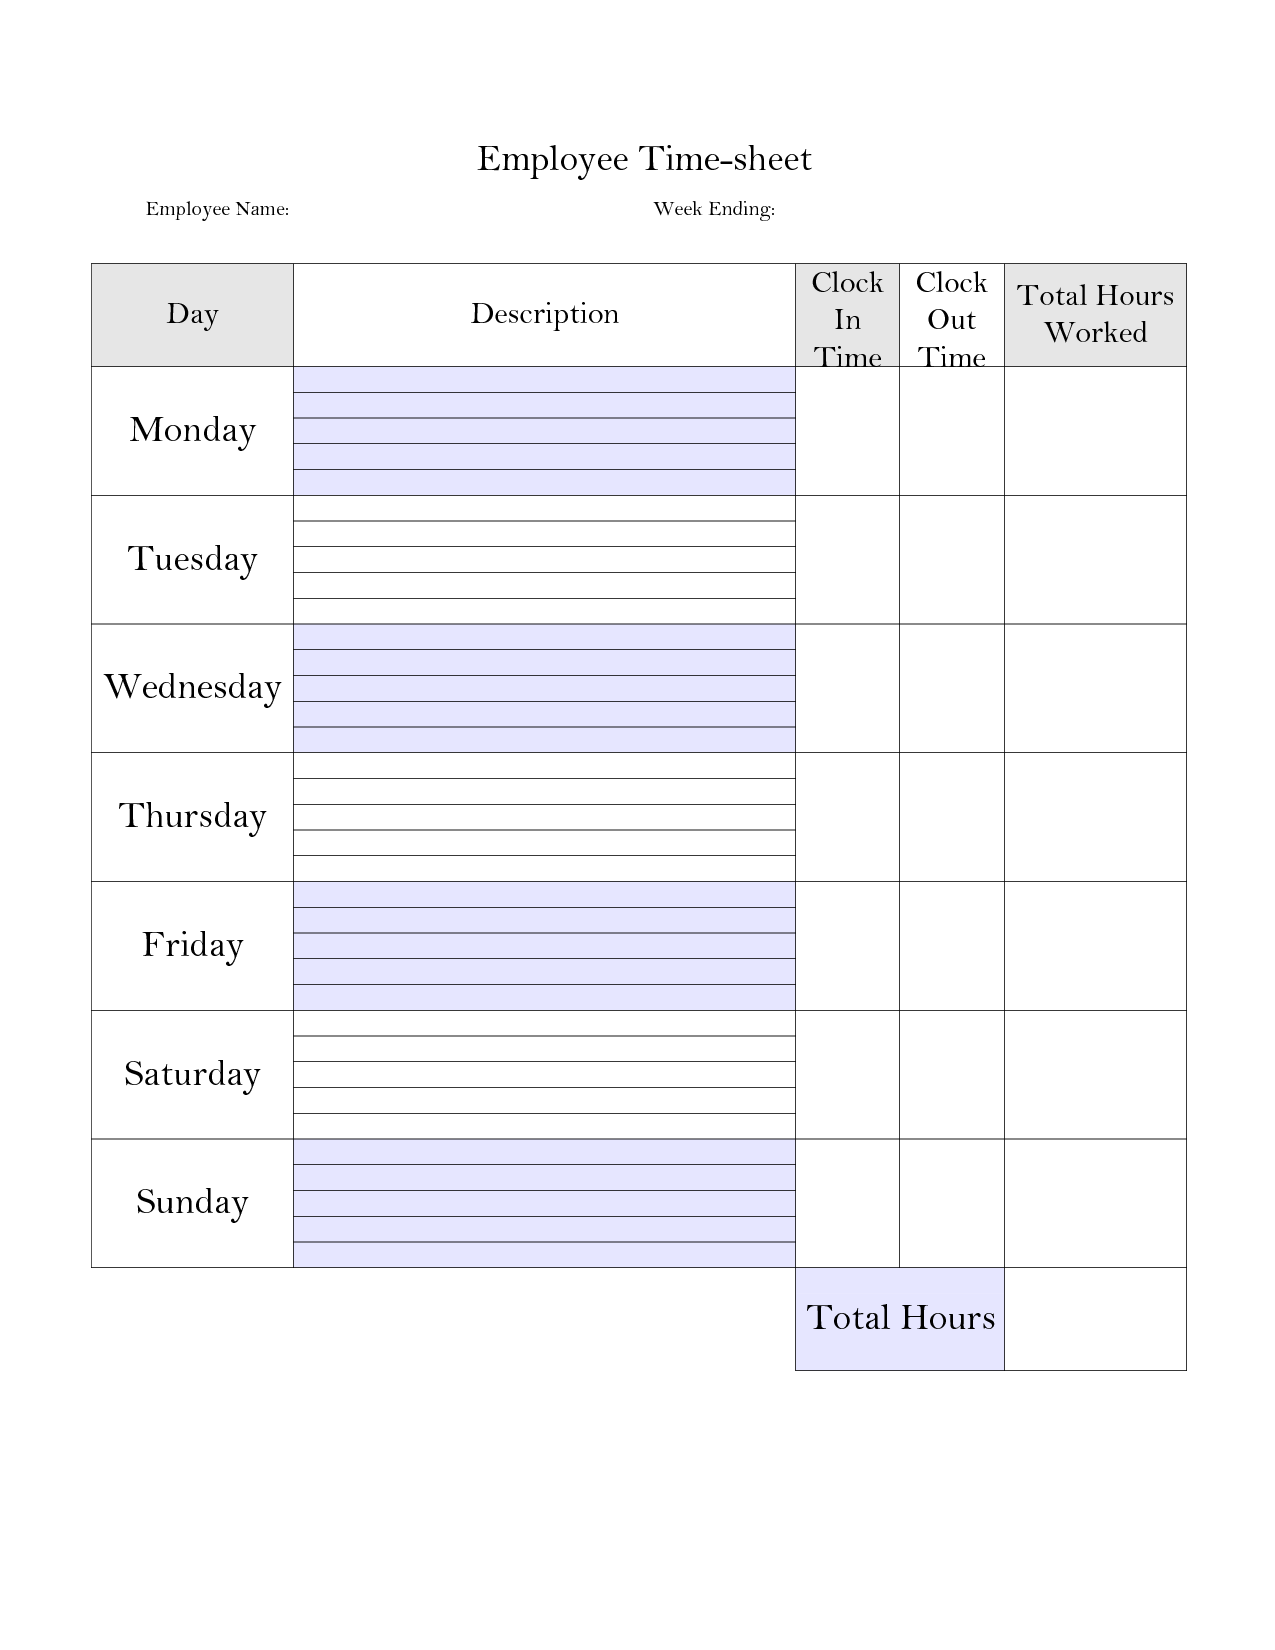 printable weekly employee time card google search construction